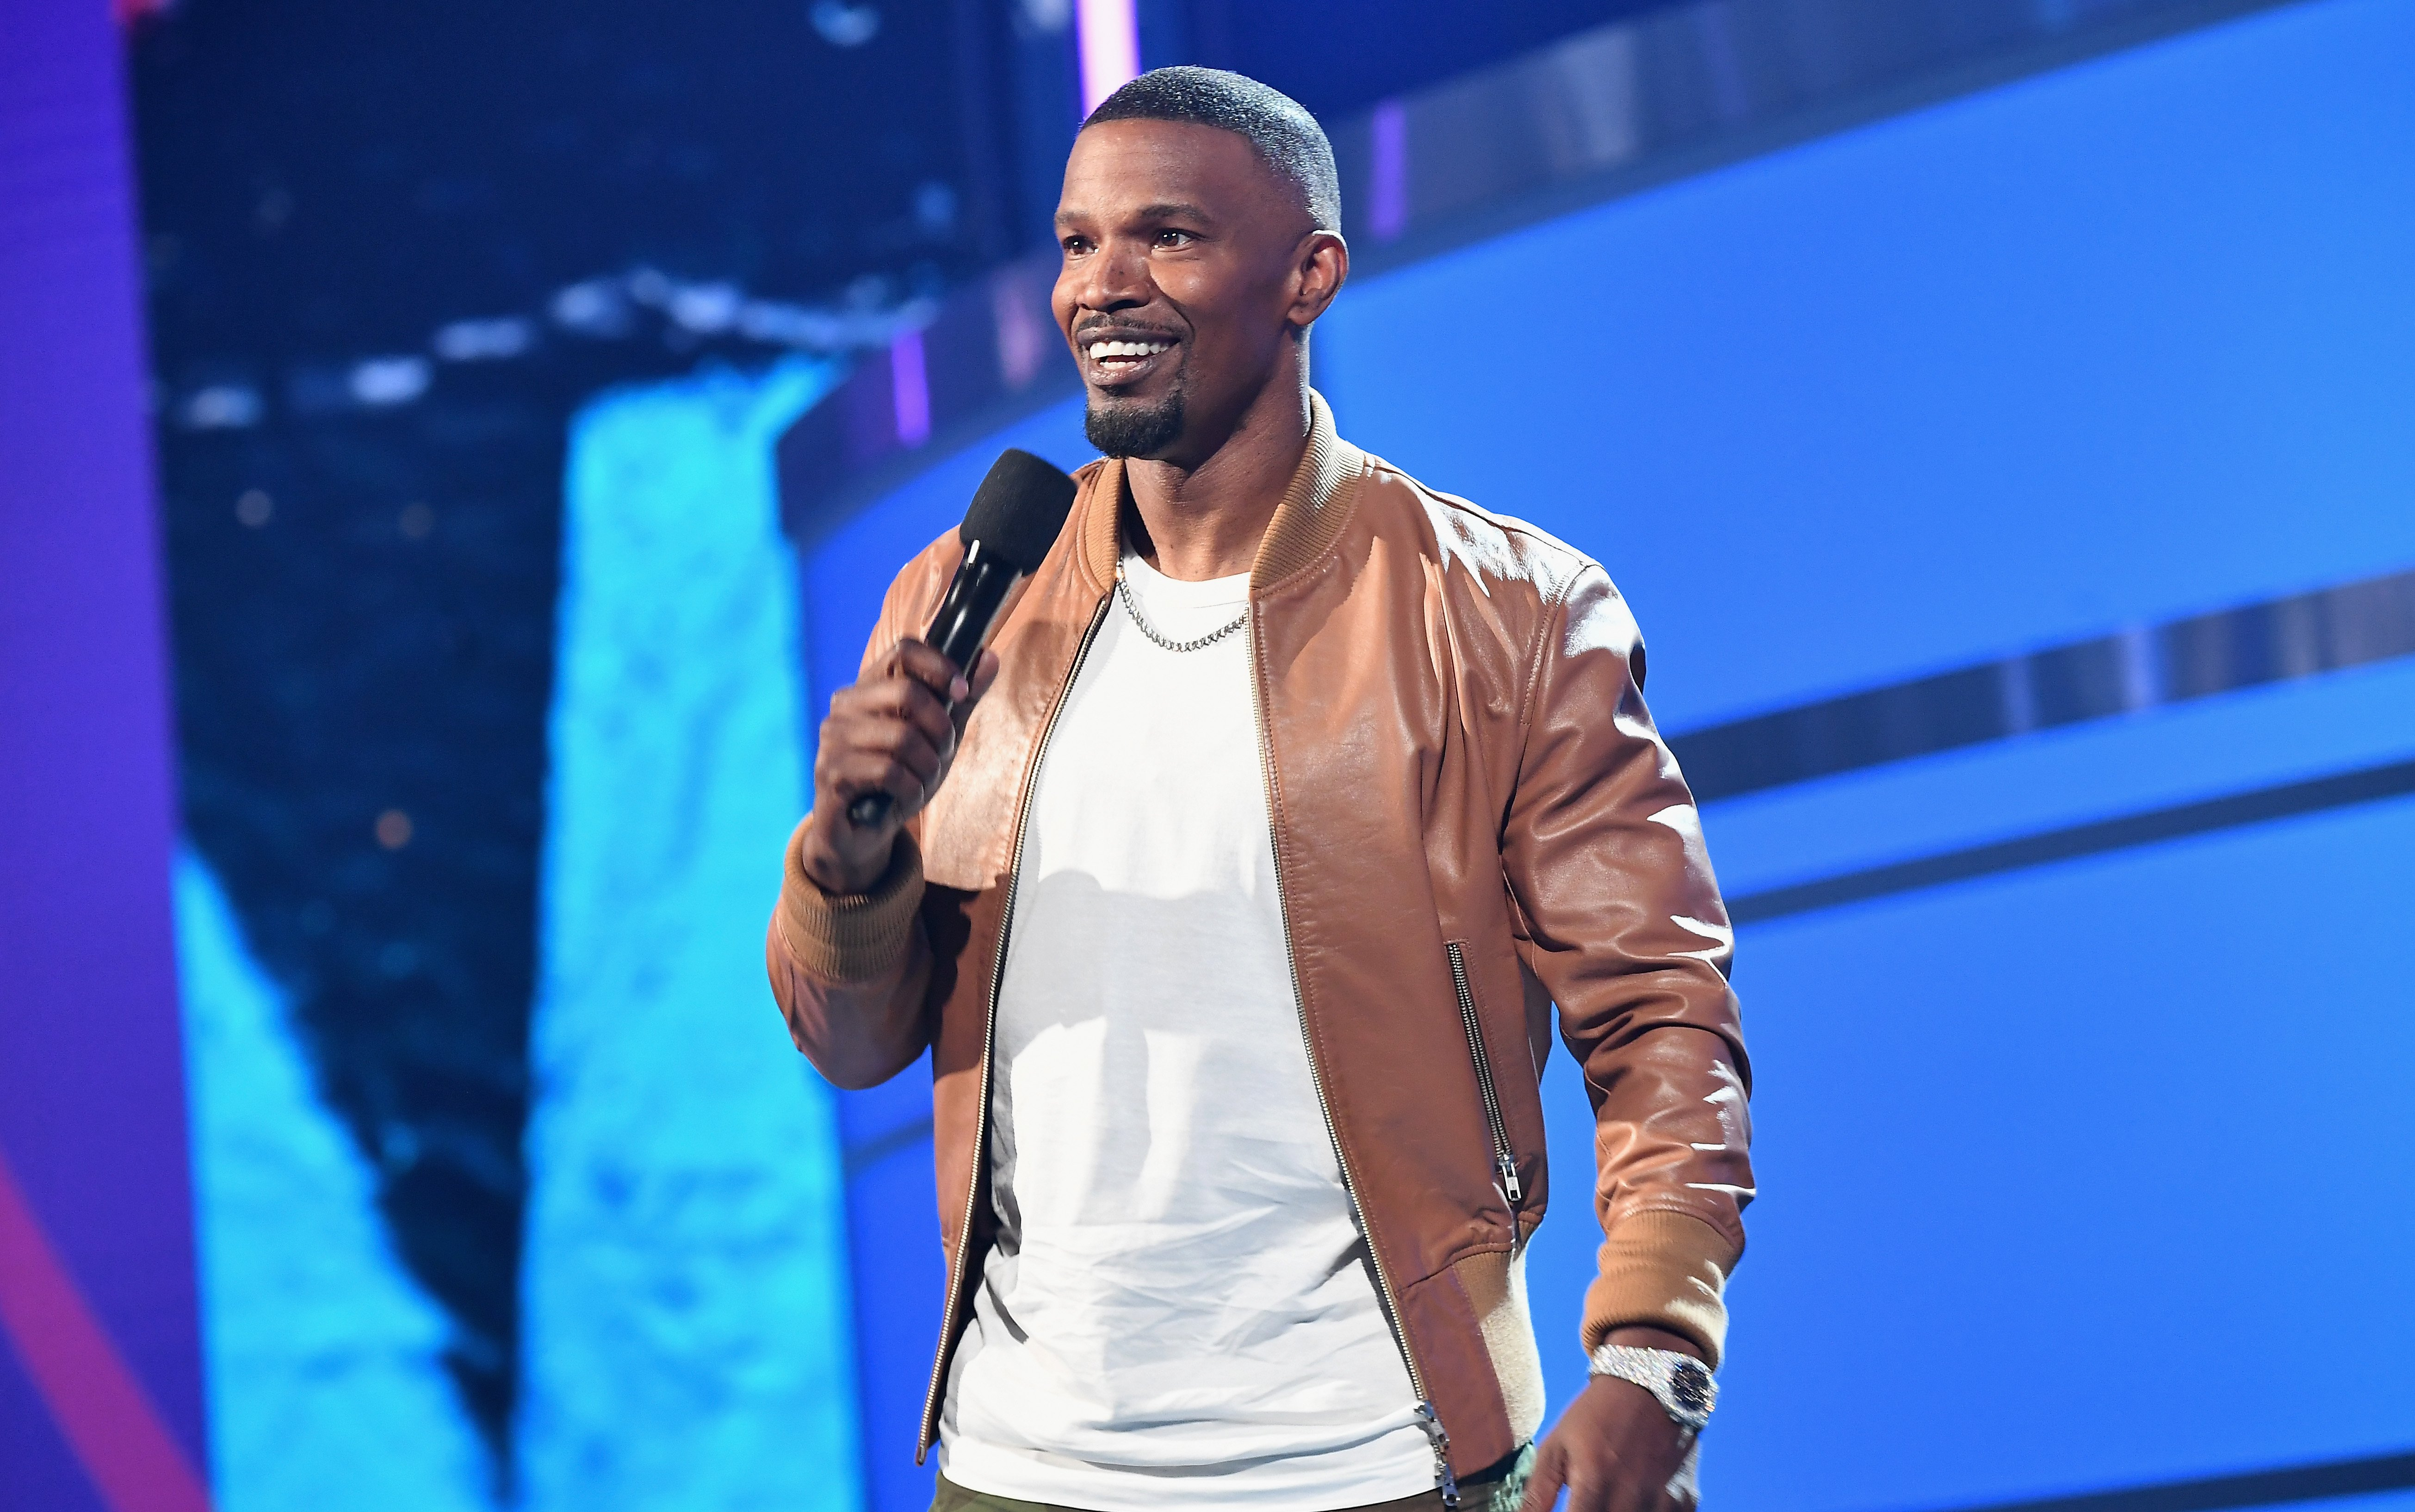 Jamie Foxx speaks onstage at the 2018 BET Awards at Microsoft Theater on June 24, 2018 in Los Angeles, California | Photo: GettyImages